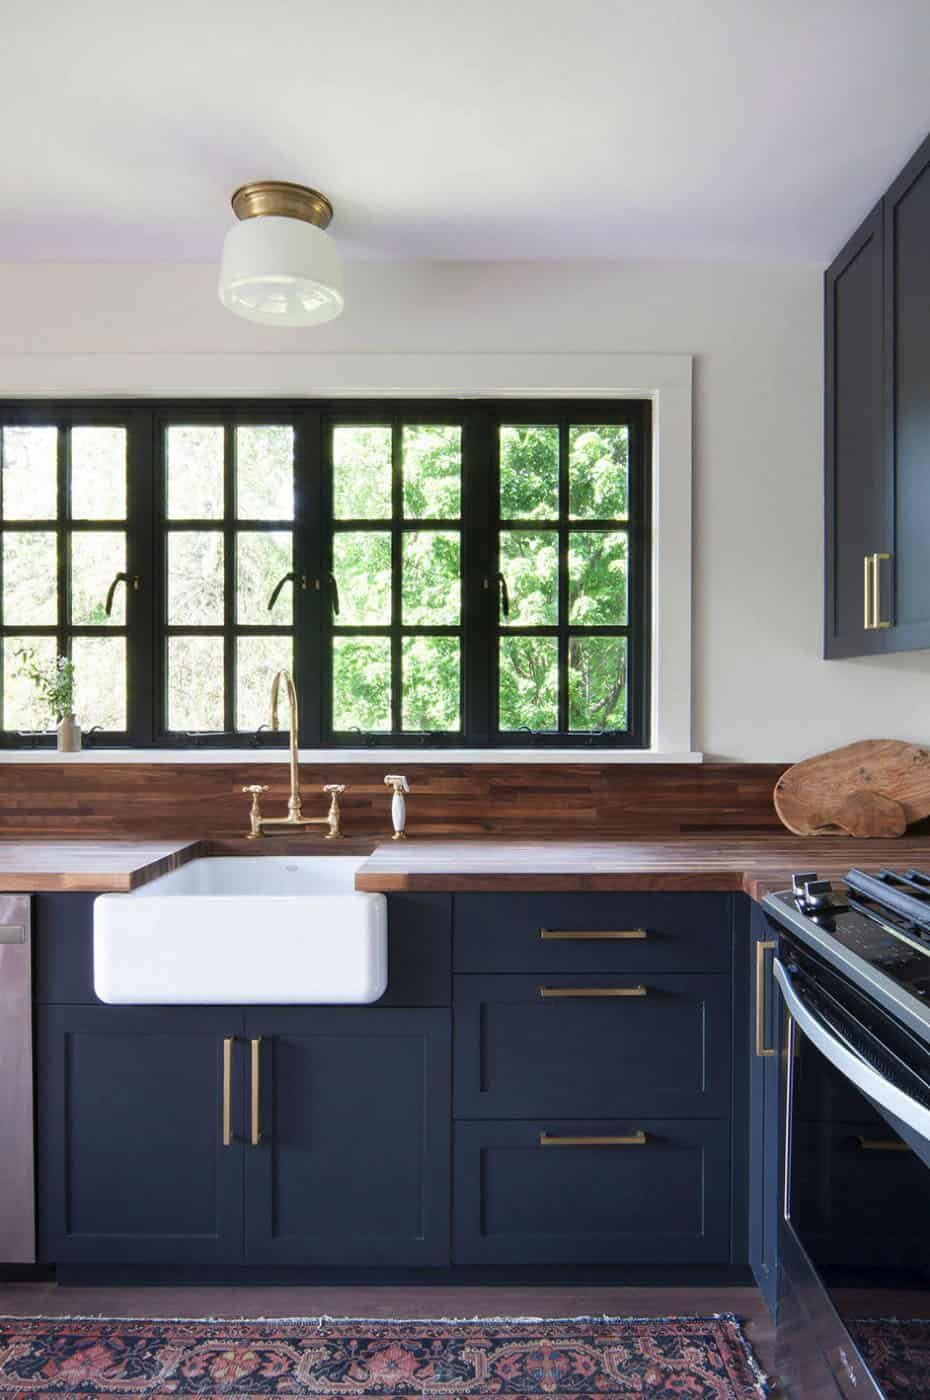 Charming Midcentury Modern Cottage Overlooking The Hudson River In 2020 Kitchen Cabinet Styles Kitchen Cabinet Design New Kitchen Cabinets